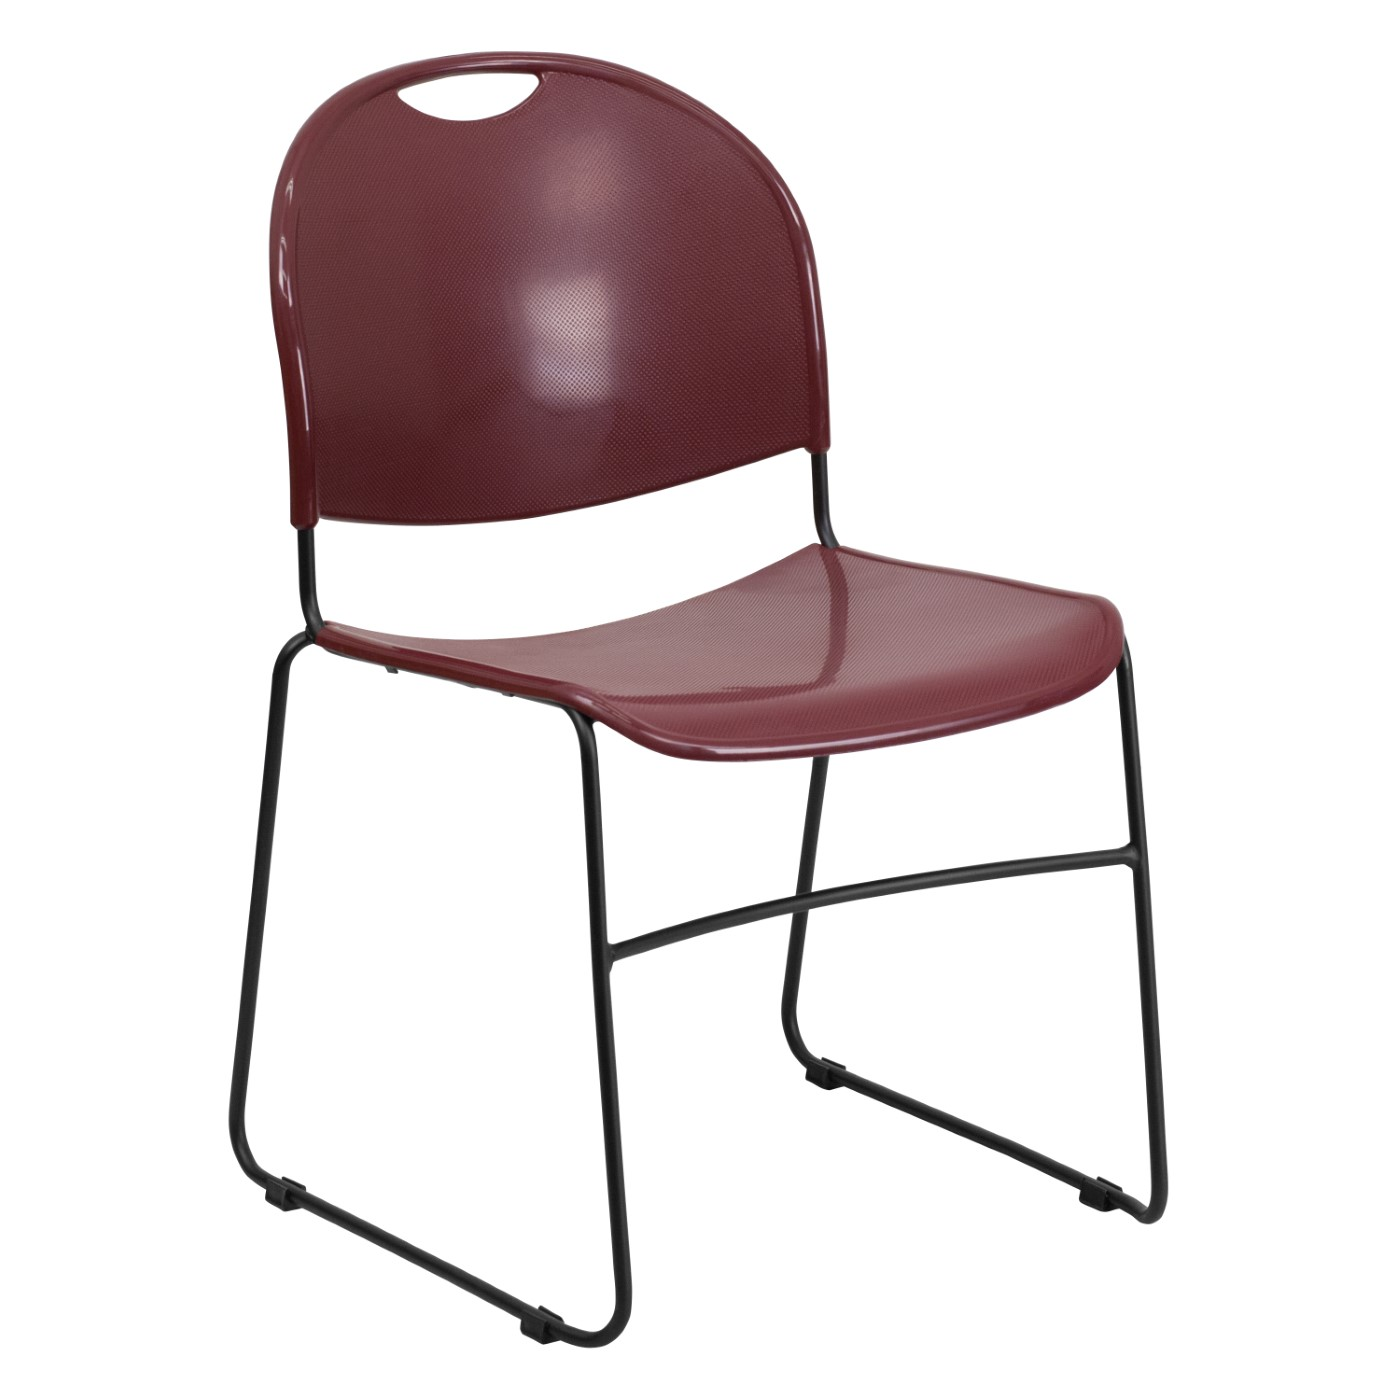 TOUGH ENOUGH Series 880 lb. Capacity Burgundy Ultra-Compact Stack Chair with Black Powder Coated Frame